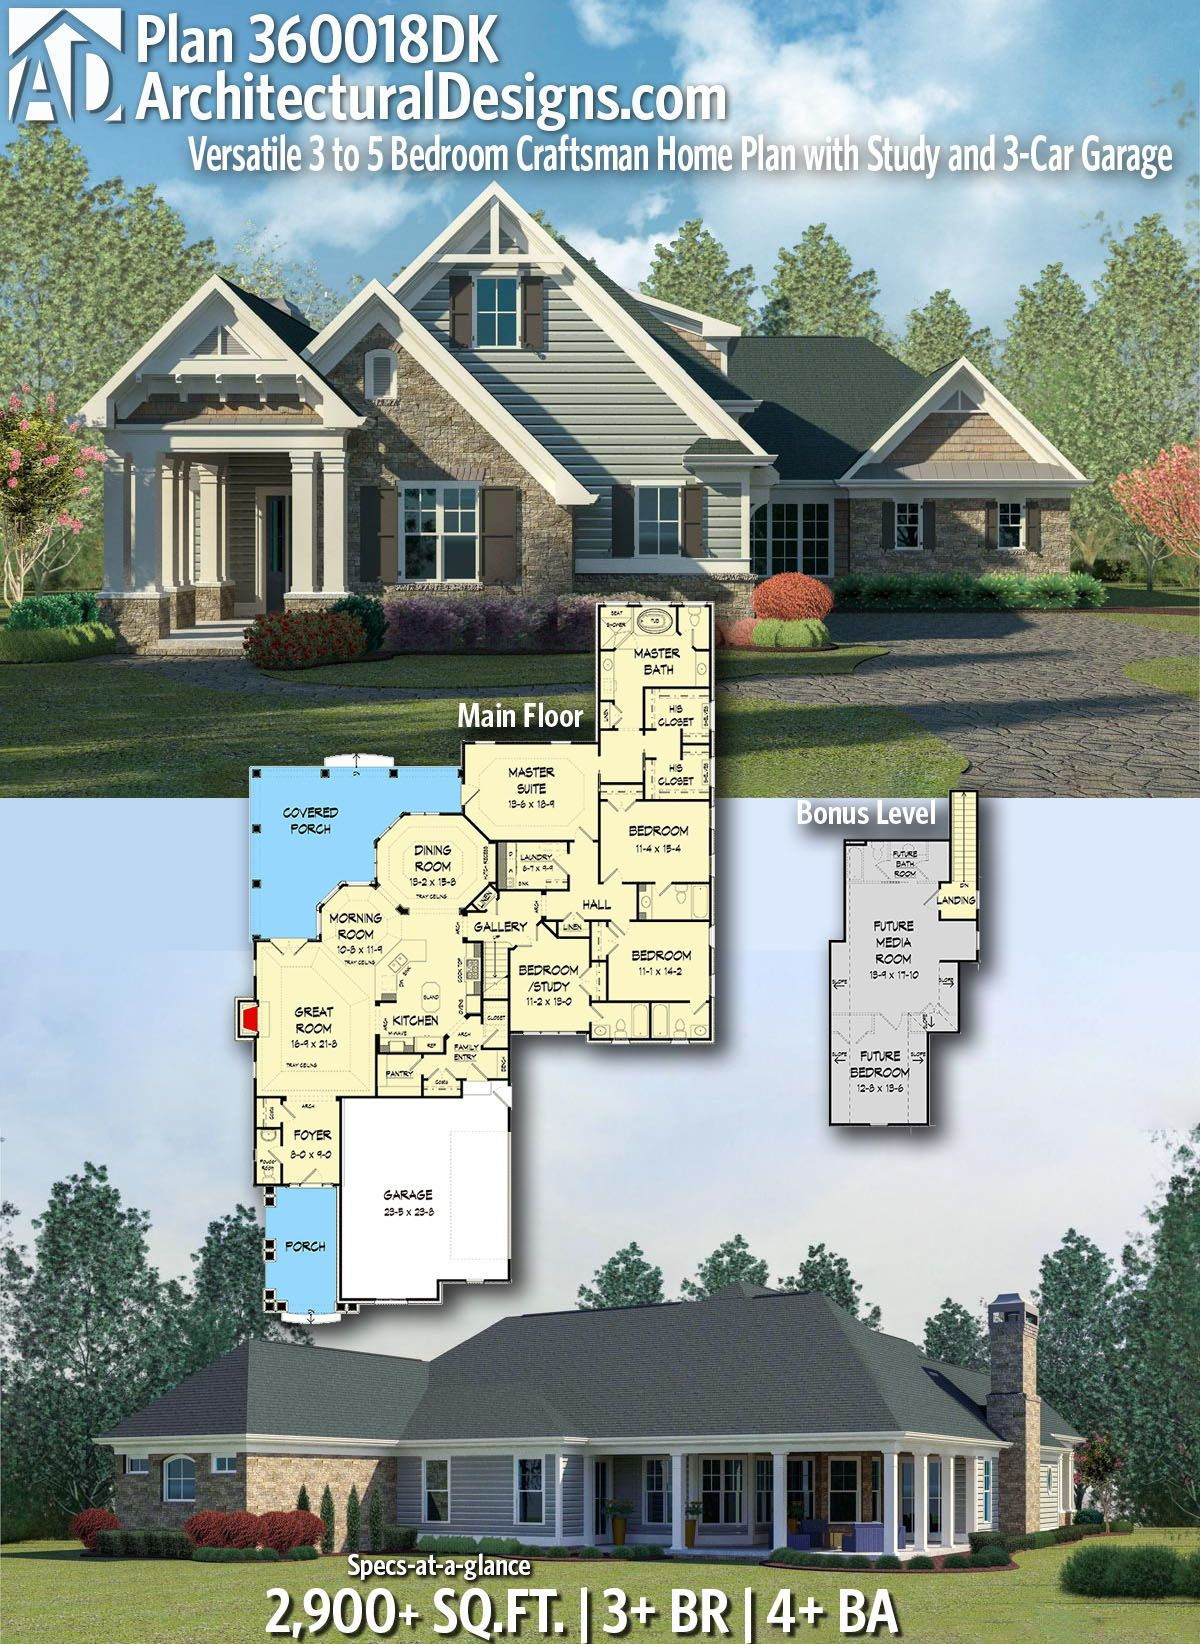 Architectural designs home plan dk gives you bedrooms baths and sq ft ready when are where do want to build also rh pinterest